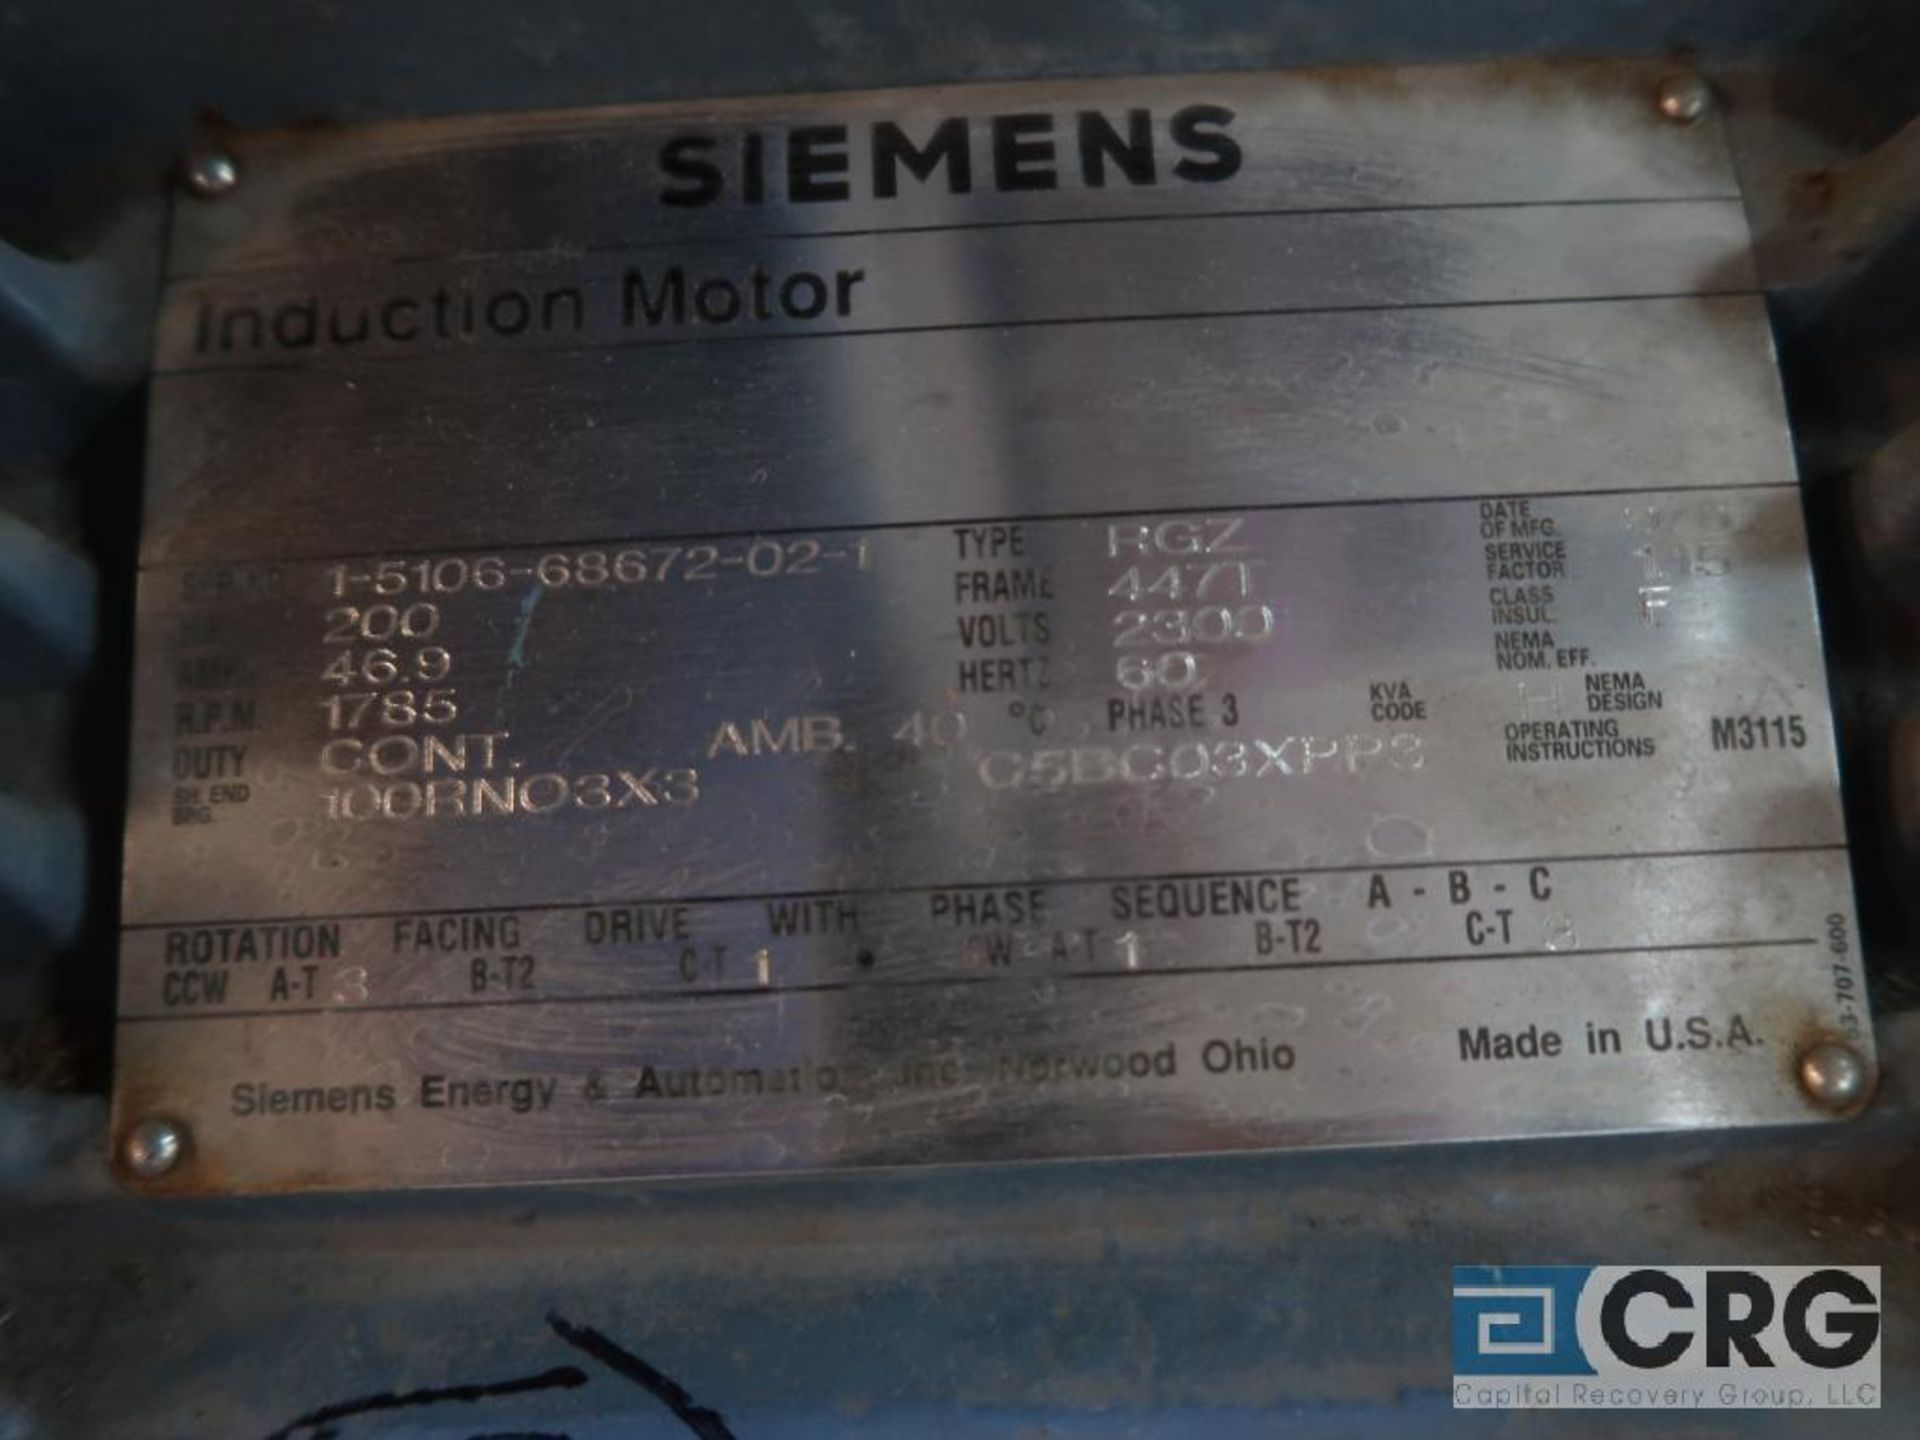 Siemens induction motor, 200 HP, 1,785 RPMs, 2,300 volt, 3 ph., 447T frame (Finish Building) - Image 2 of 2